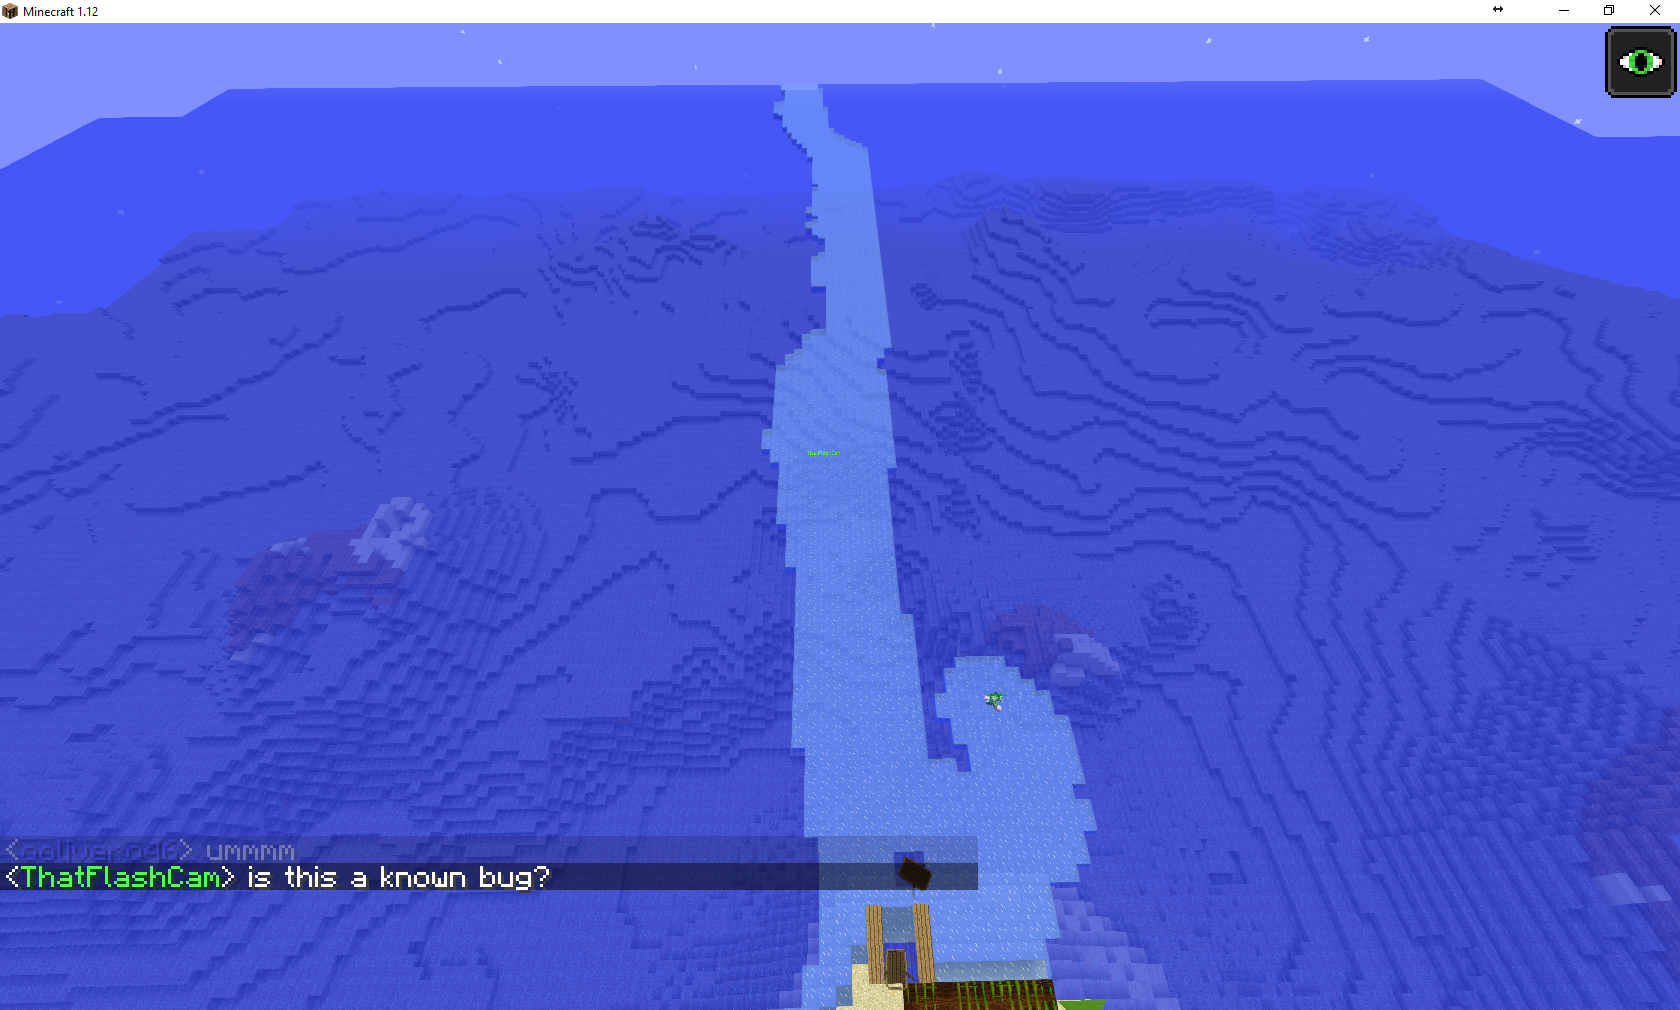 Mc 119658 Frost Walker Ice Not Melting Jira This is in the videogame minecraft. mc 119658 frost walker ice not melting